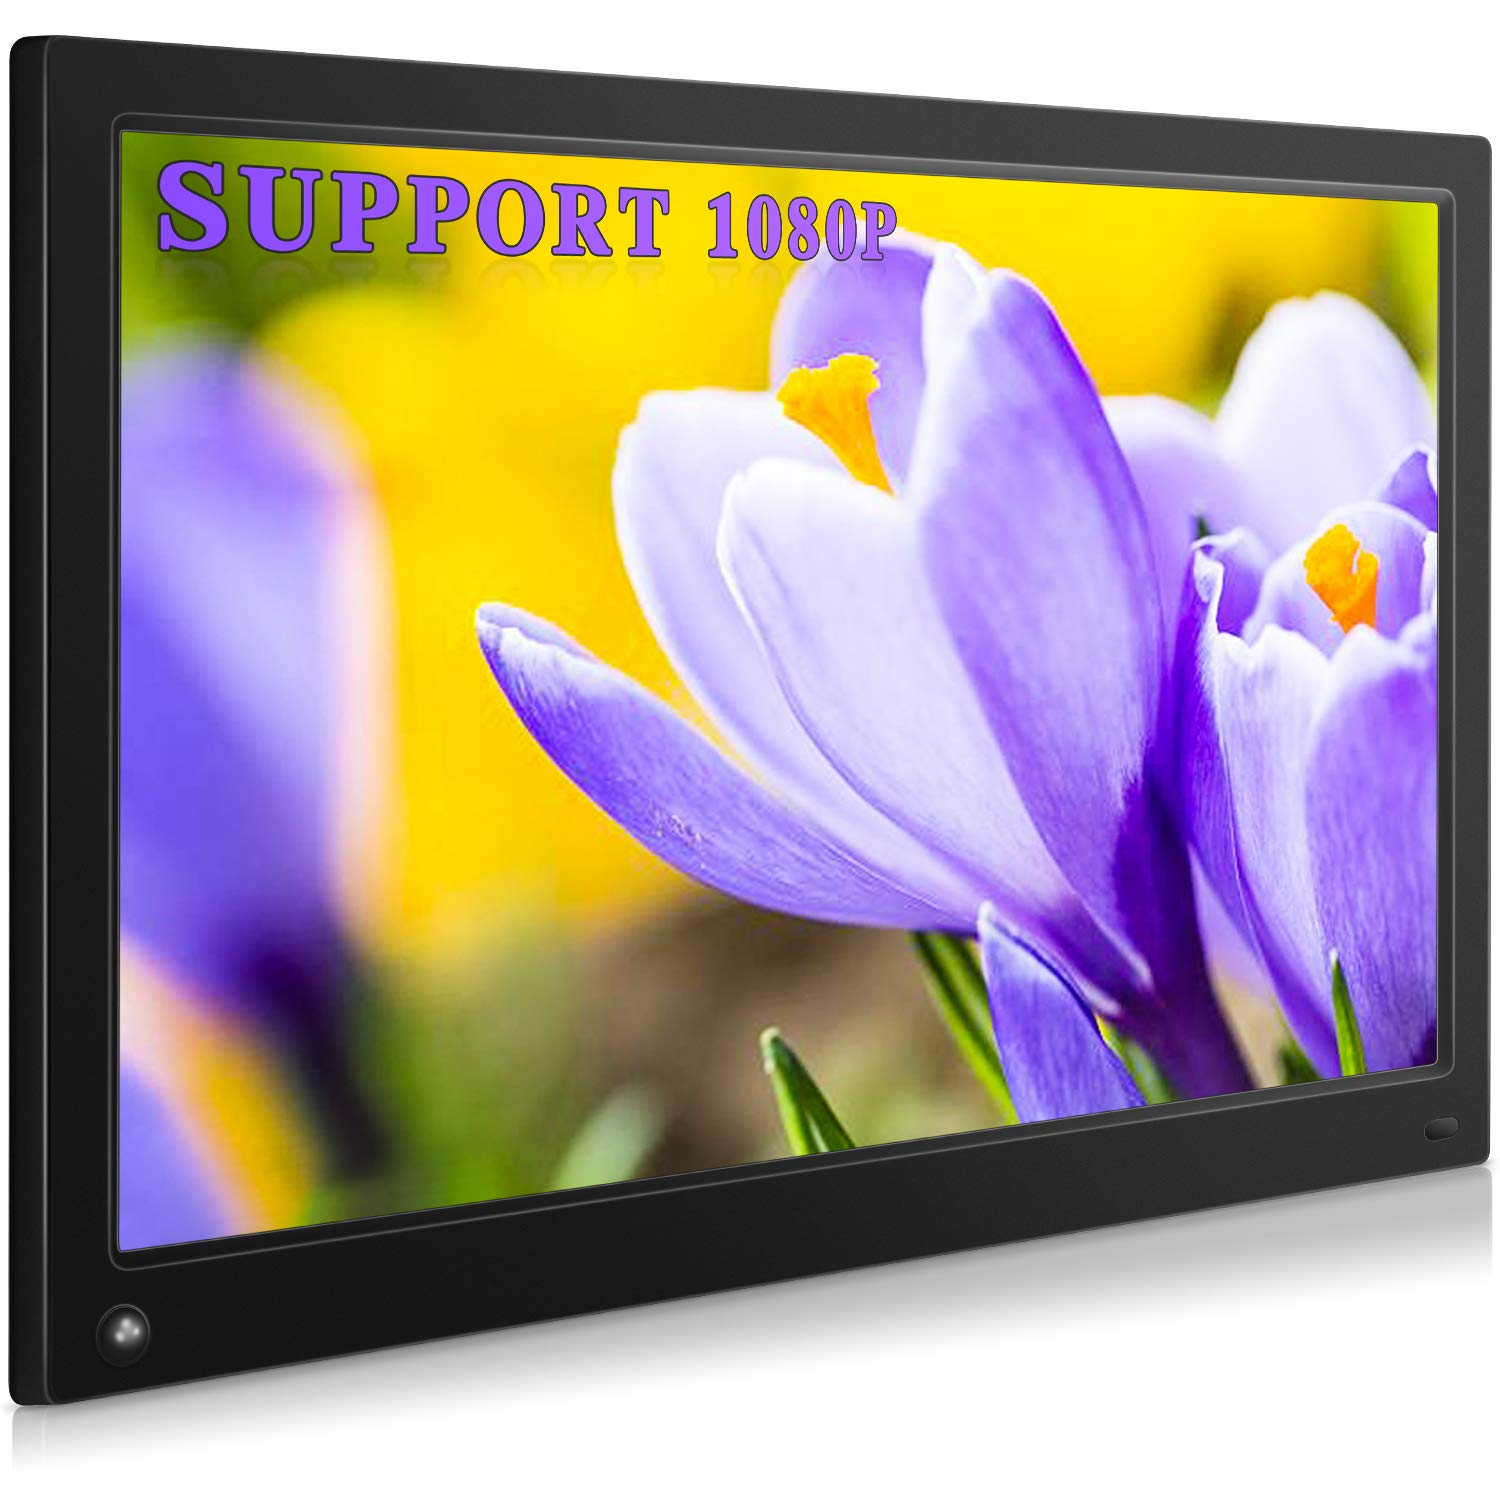 MRQ 15.6 Inch Digital Photo Frame Display Photos with Background Music 1080P Video USB SD Solt Supported, 1920x1080 HD Digital Picture Frame with Auto-Rotate, Motion Sensor Function, Remote Control by MRQ